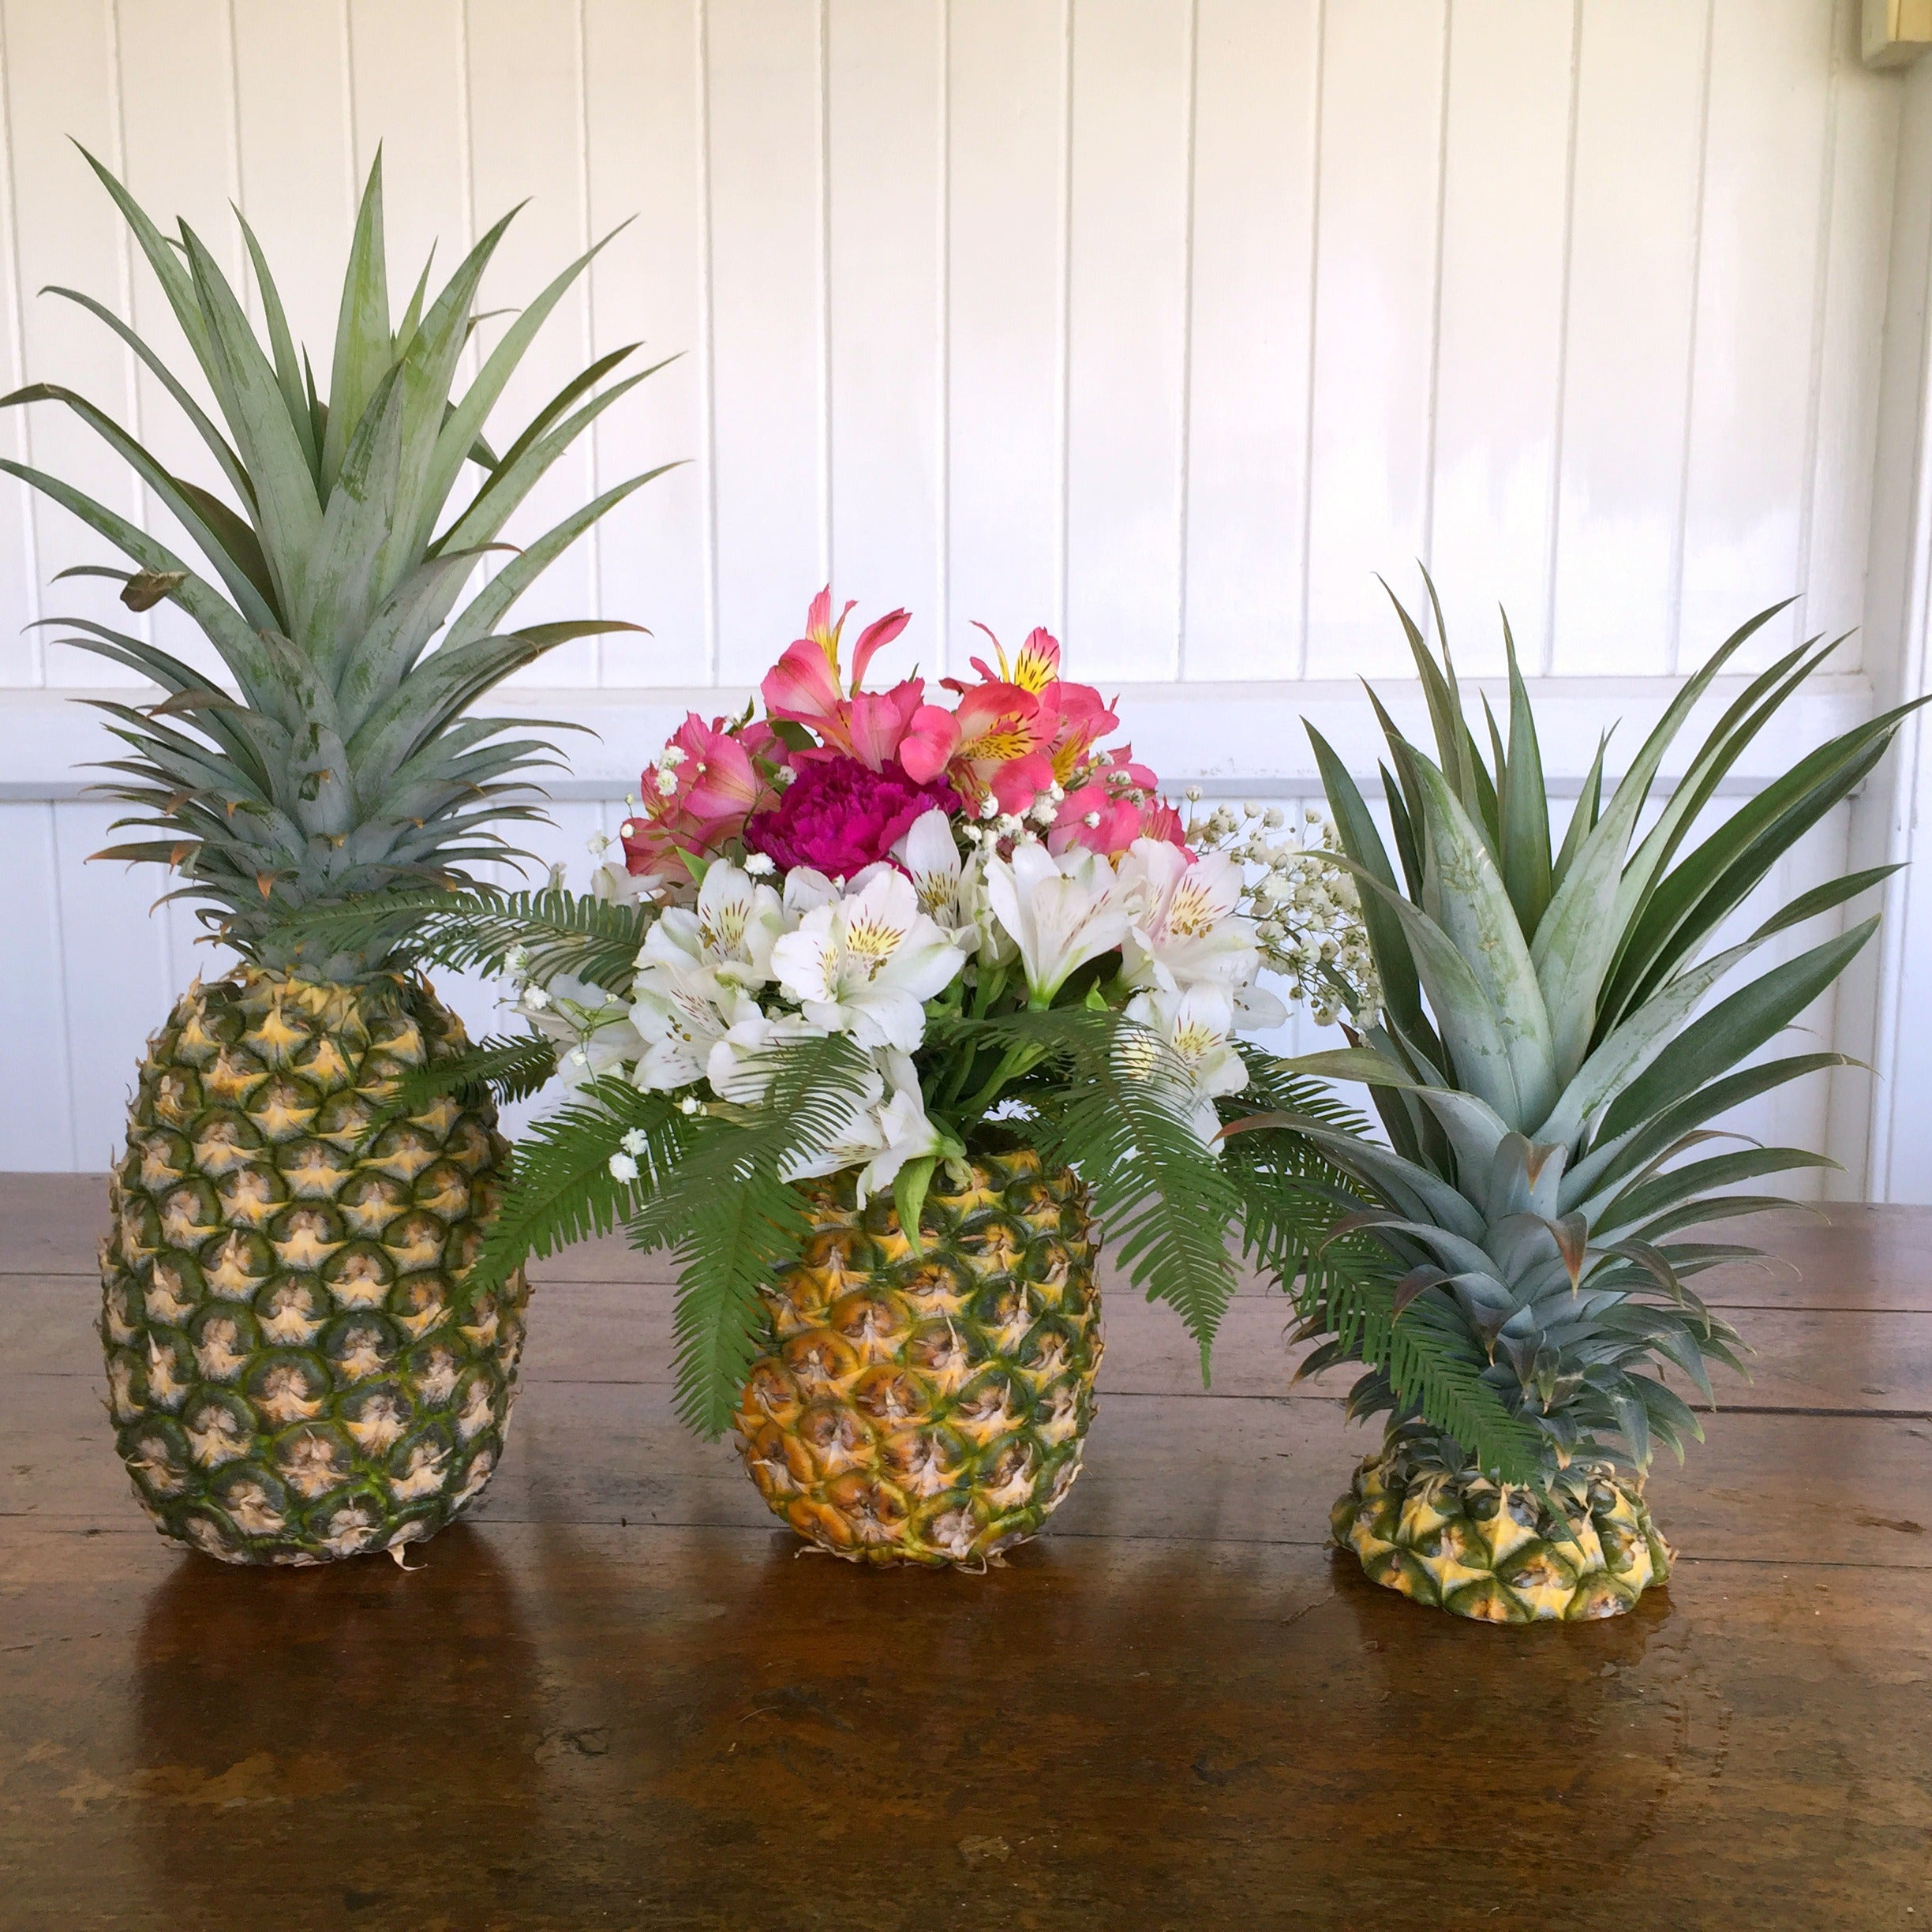 Watermelon Table Setting with three Pineapples